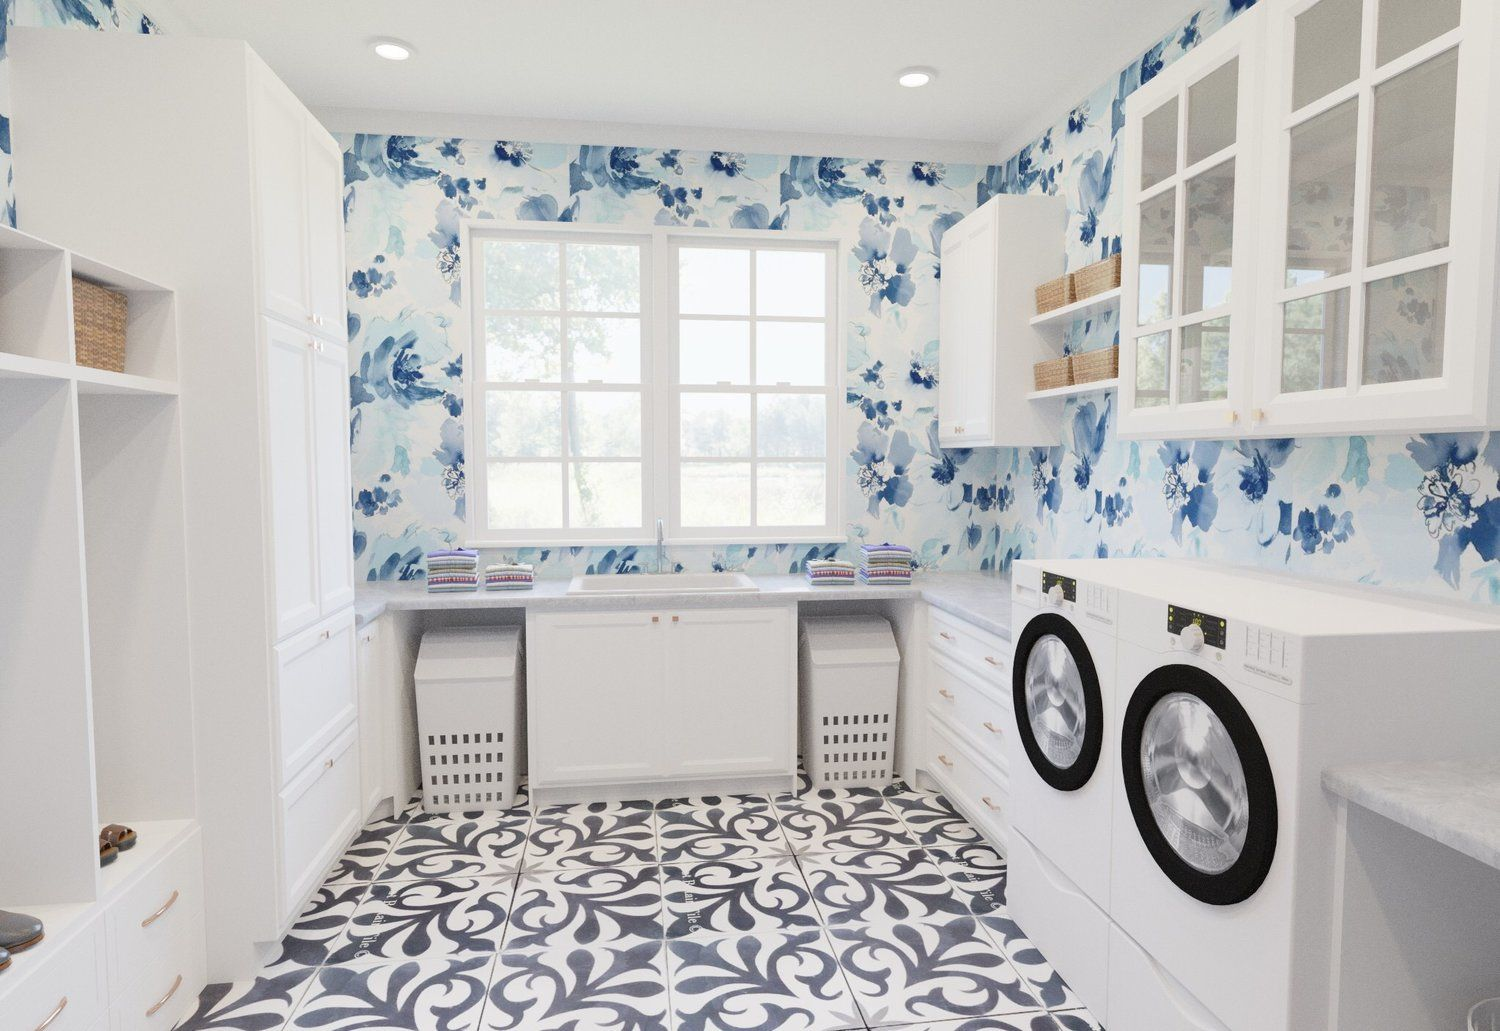 Asha Maia Design Interiors Events Laundry Room With Printed